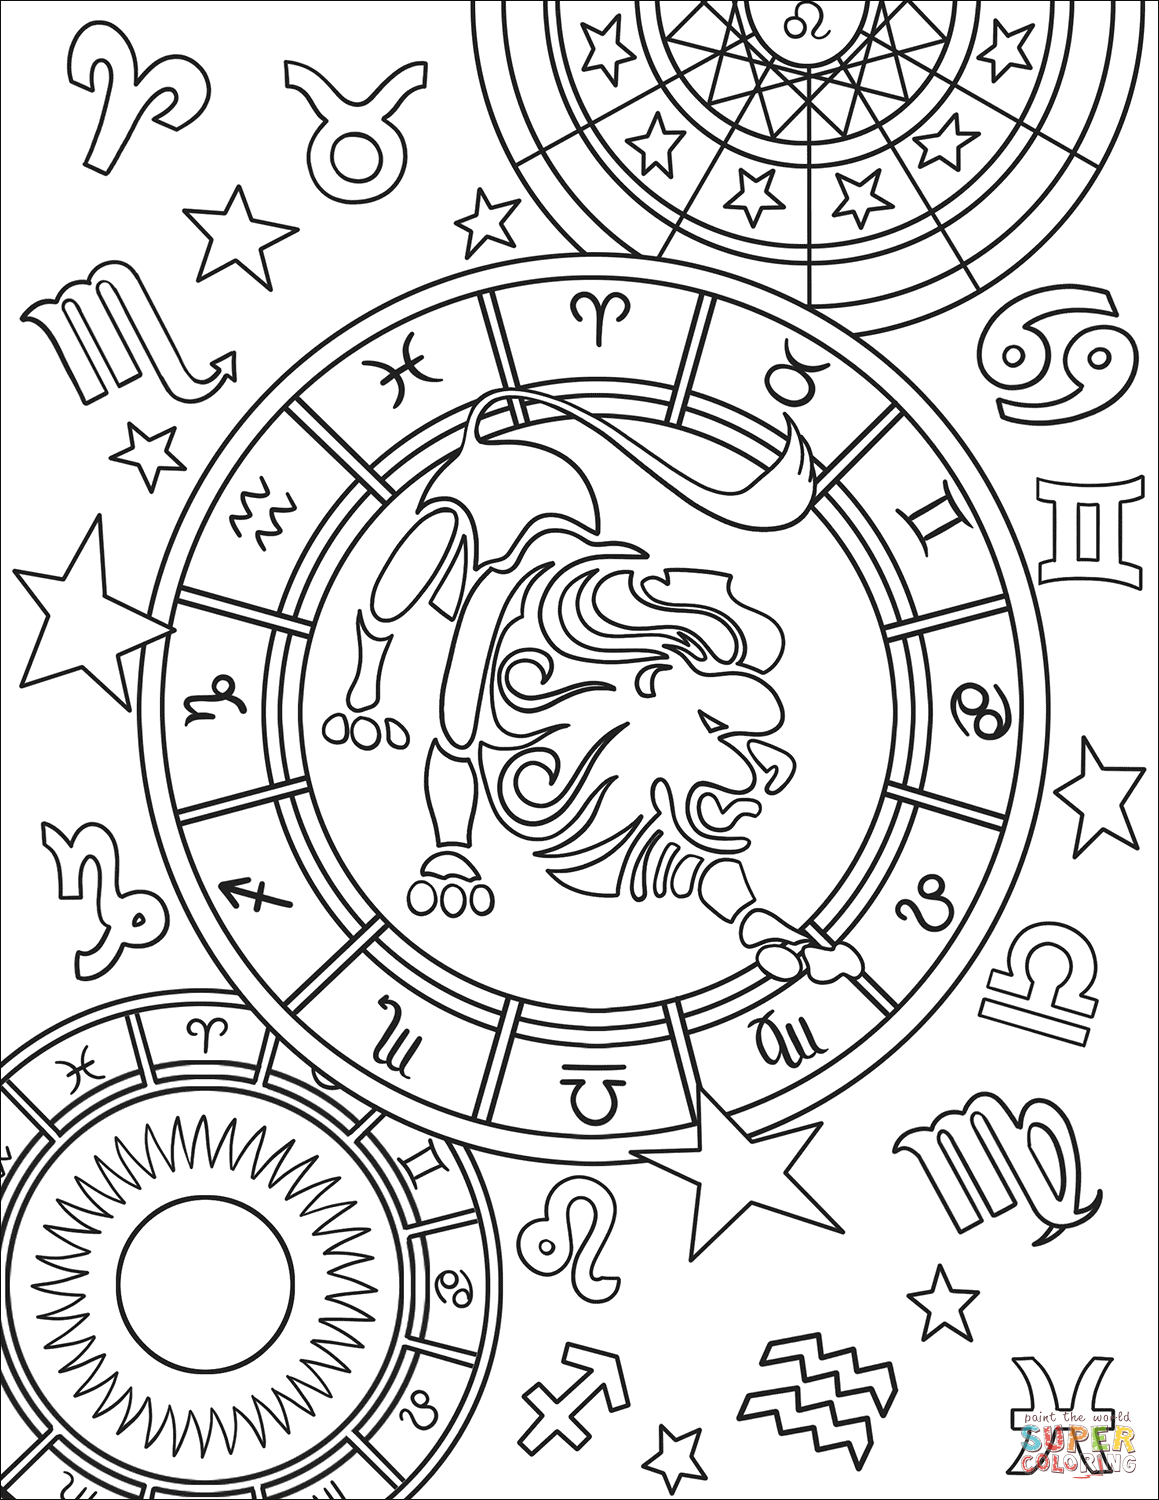 zodiac signs coloring pages zodiac signs coloring pages kidsuki signs pages zodiac coloring